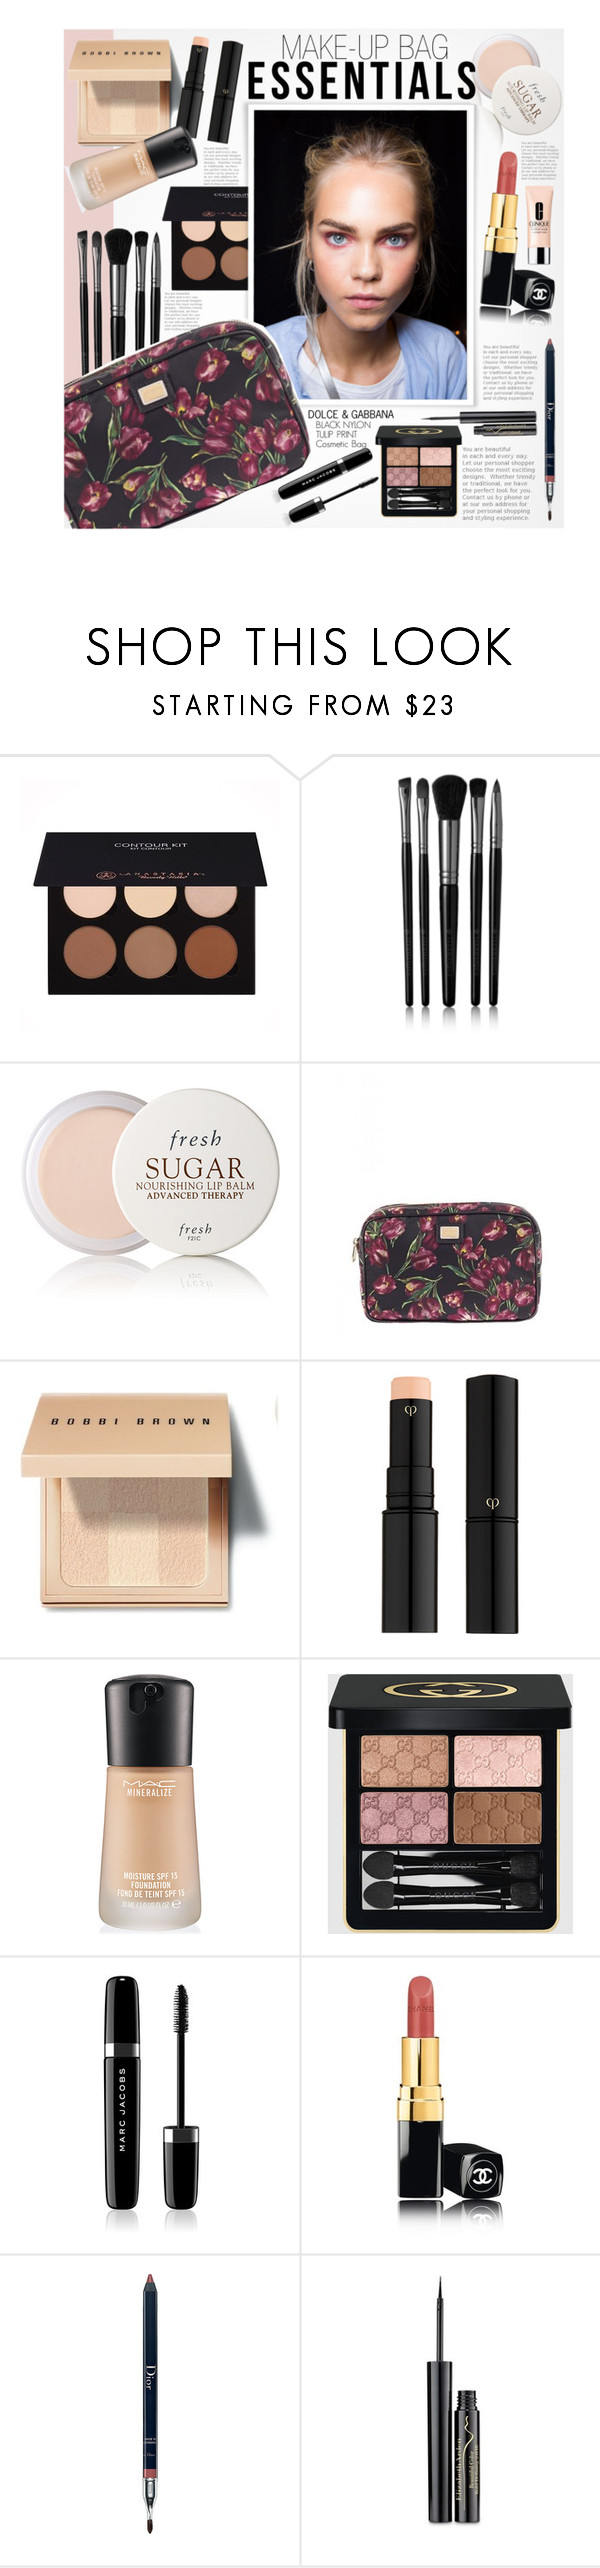 """e s s e n t i a l s"" by earendil-xx ❤ liked on Polyvore featuring beauty, Anastasia Beverly Hills, Illamasqua, Fresh, Dolce&Gabbana, Bobbi Brown Cosmetics, Clé de Peau Beauté, MAC Cosmetics, Gucci and Marc Jacobs"